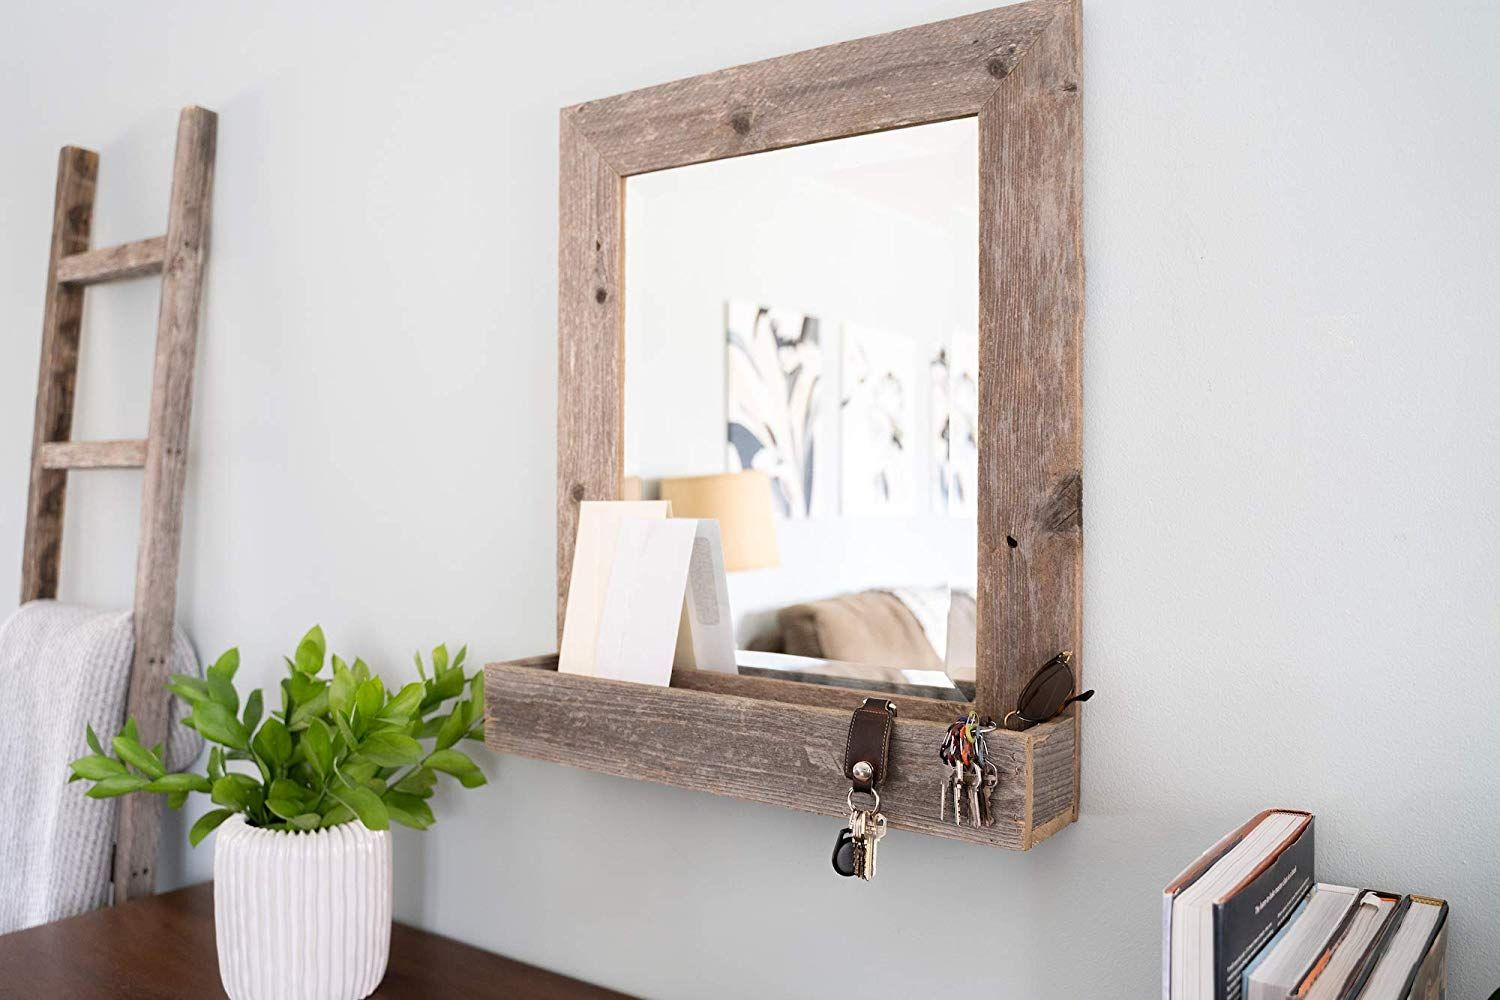 Reclaimed, antiquelooking wood is the new trend. The